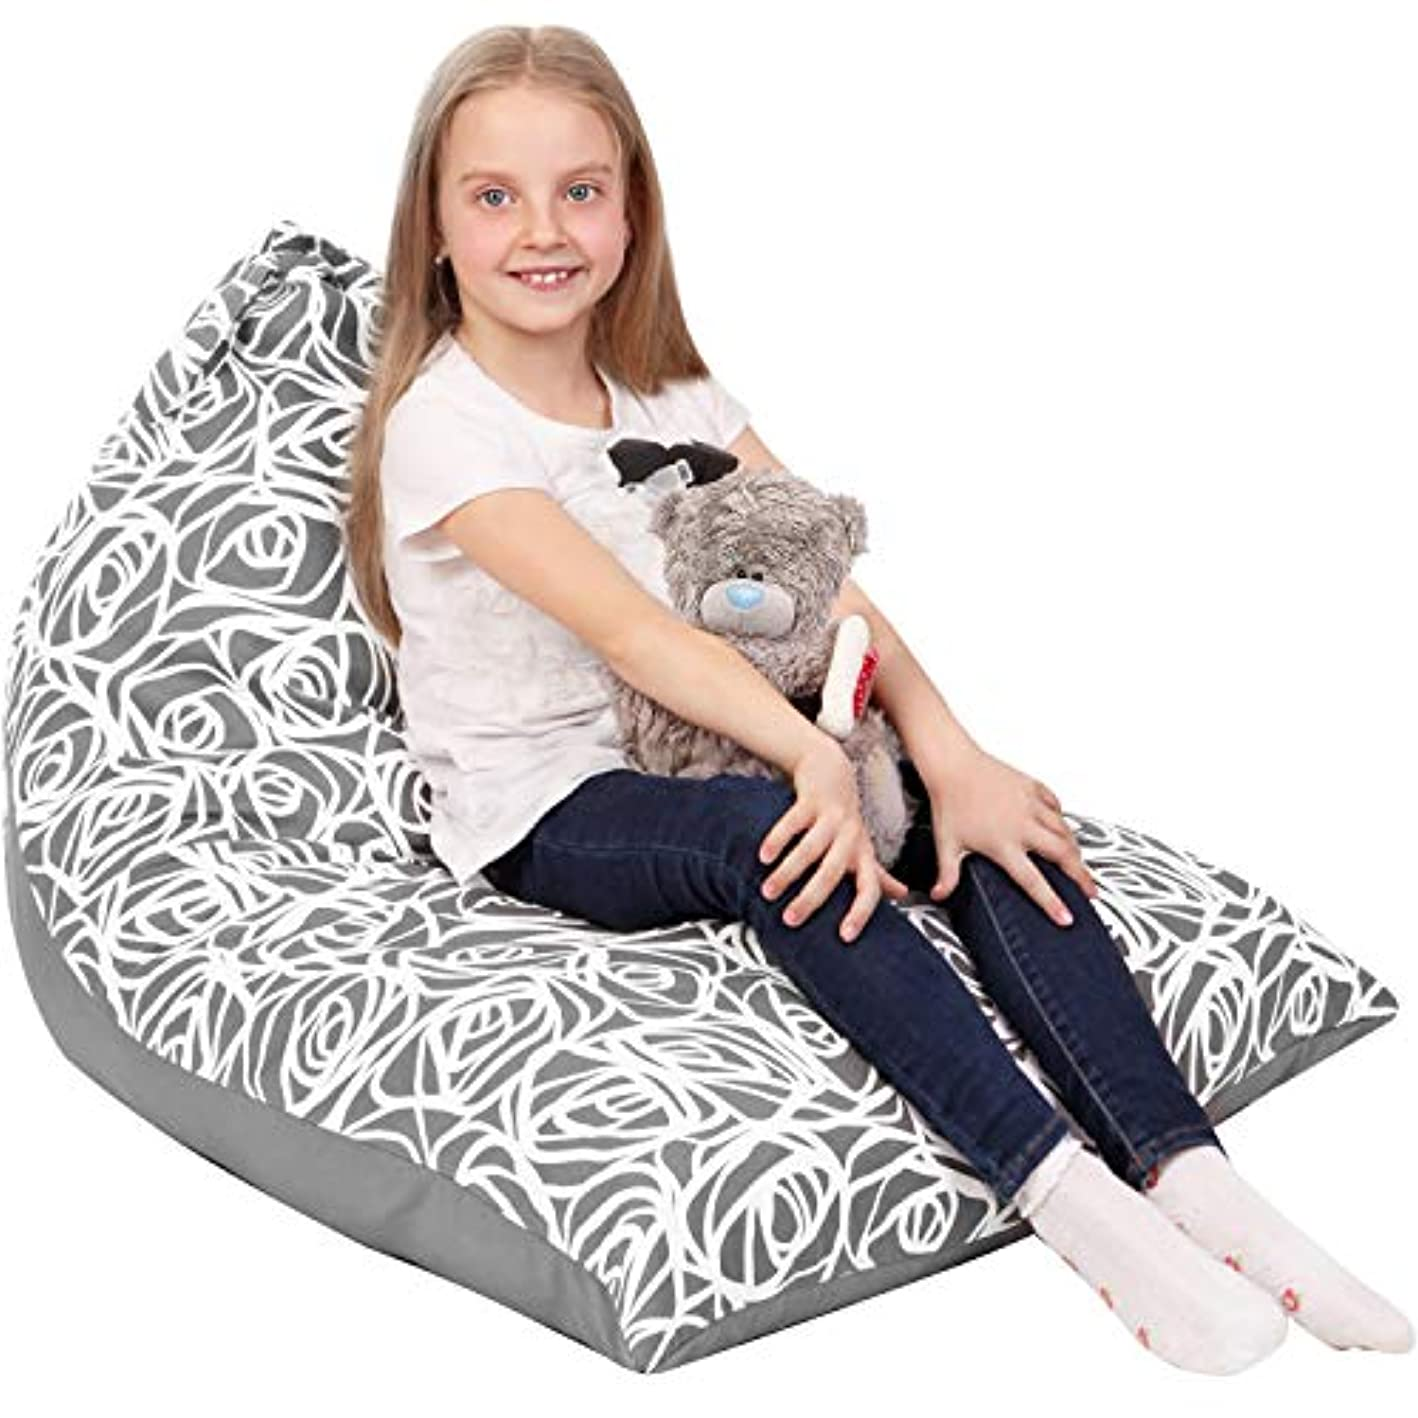 5 STARS UNITED Stuffed Animal Storage Bean Bag - Cover Only - Large Beanbag Triangle Chairs for Kids - 180+ Plush Toys Holder and Organizer for Girls - 100% Cotton Canvas - Gray Roses